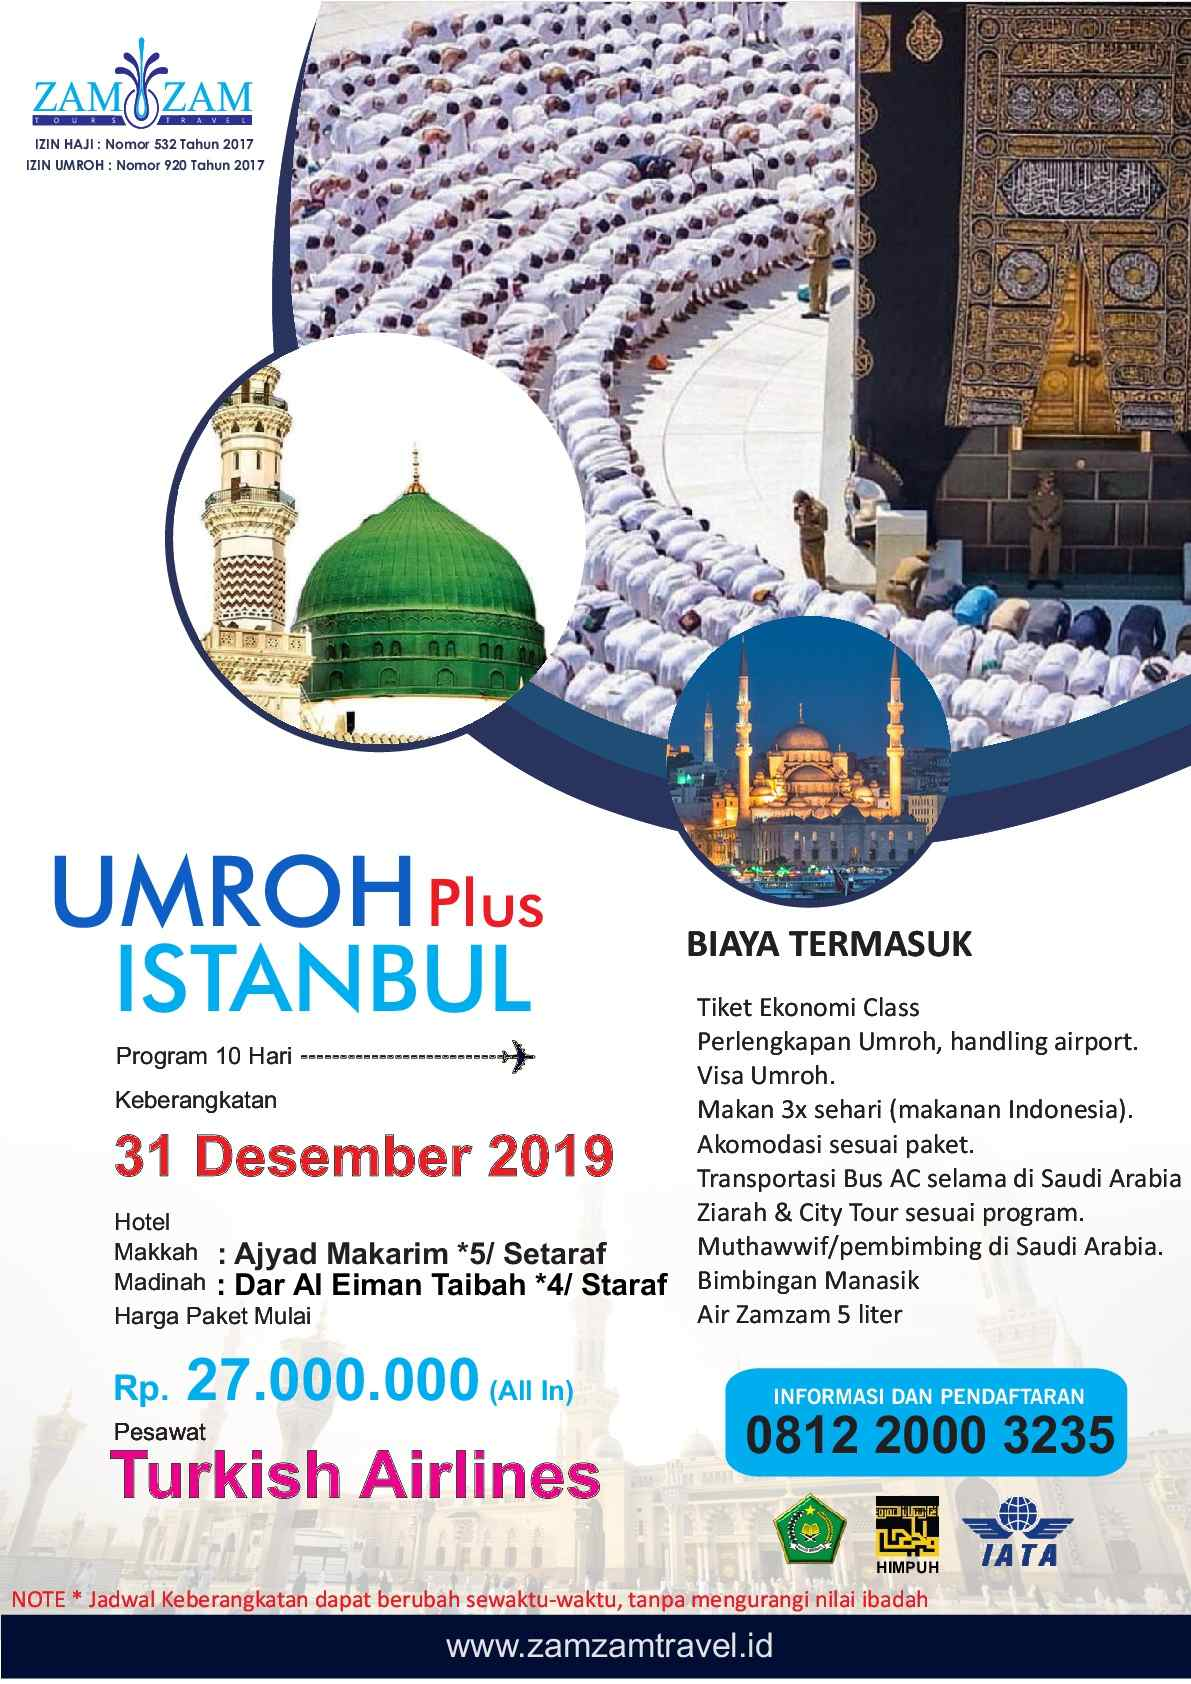 10 HARI BY TURKISH AIRLINES